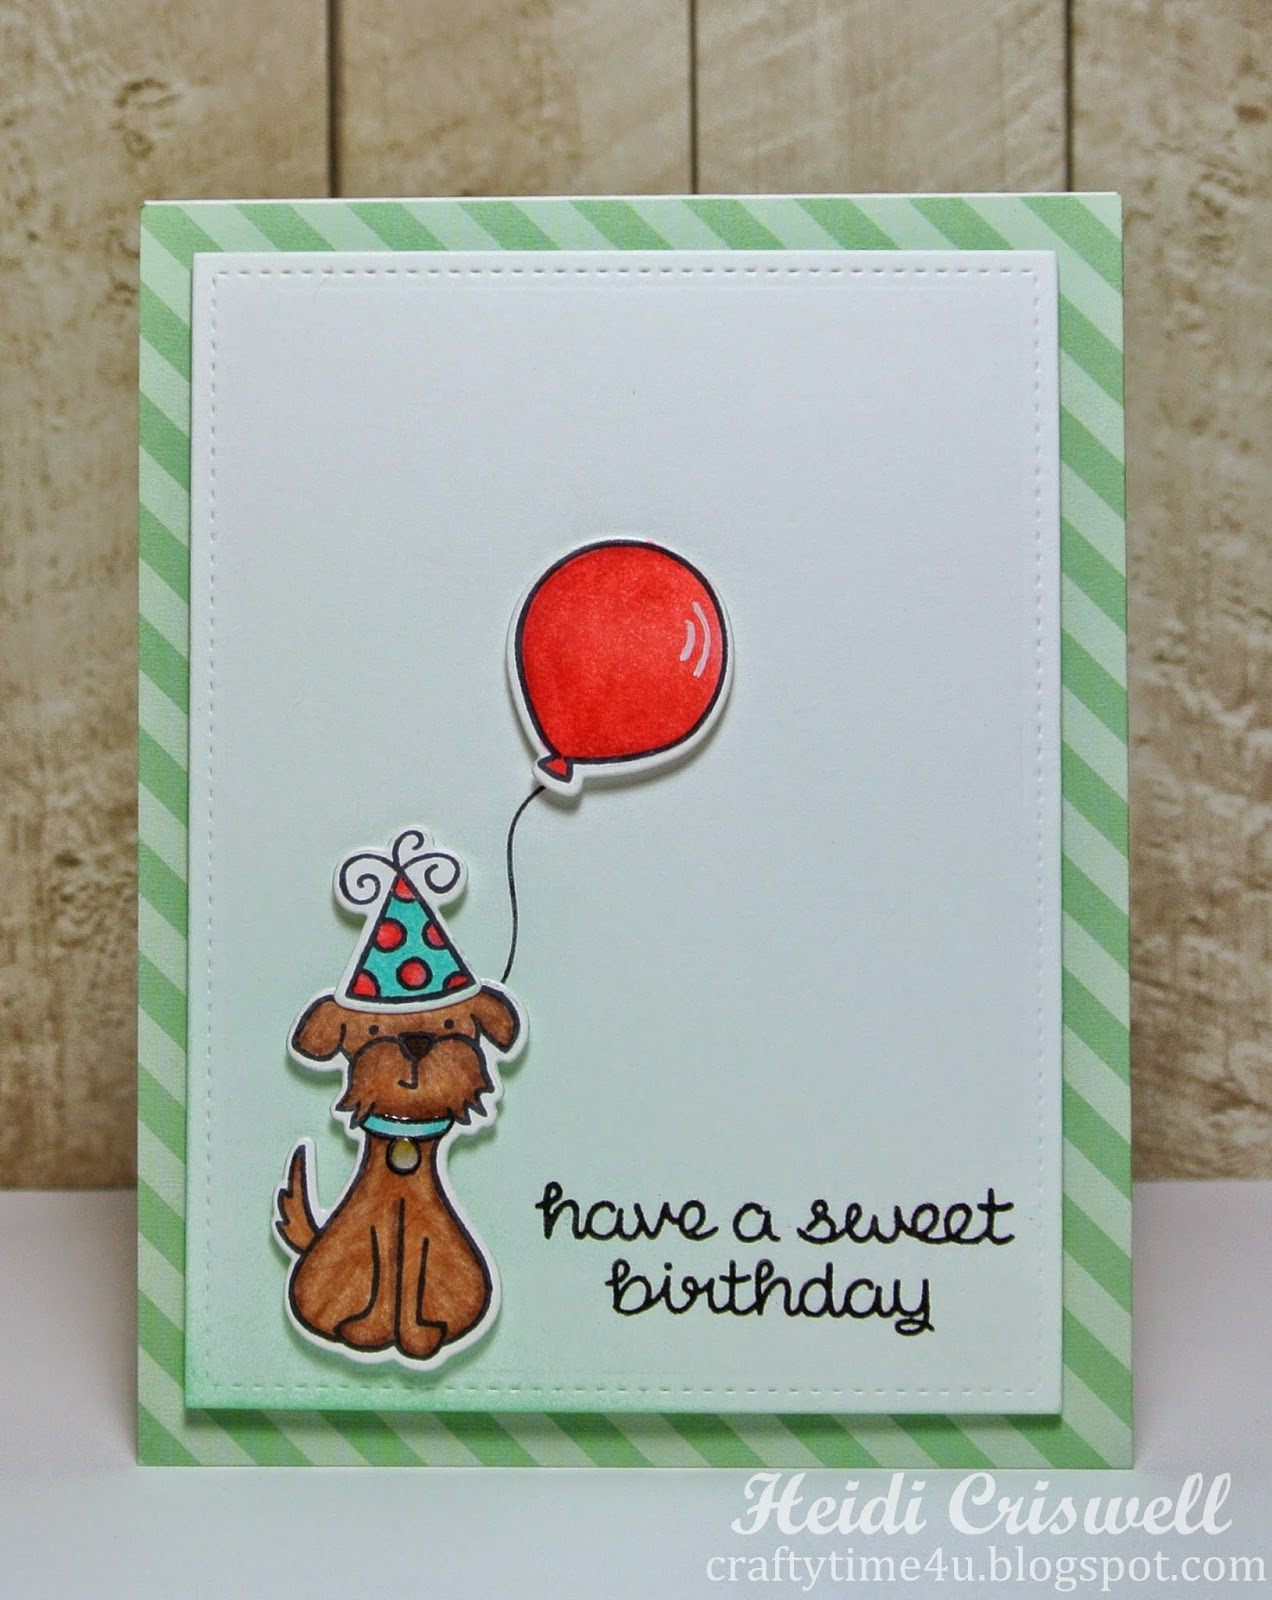 Crafty Time 4u Lawn Fawn Sweet Birthday Card